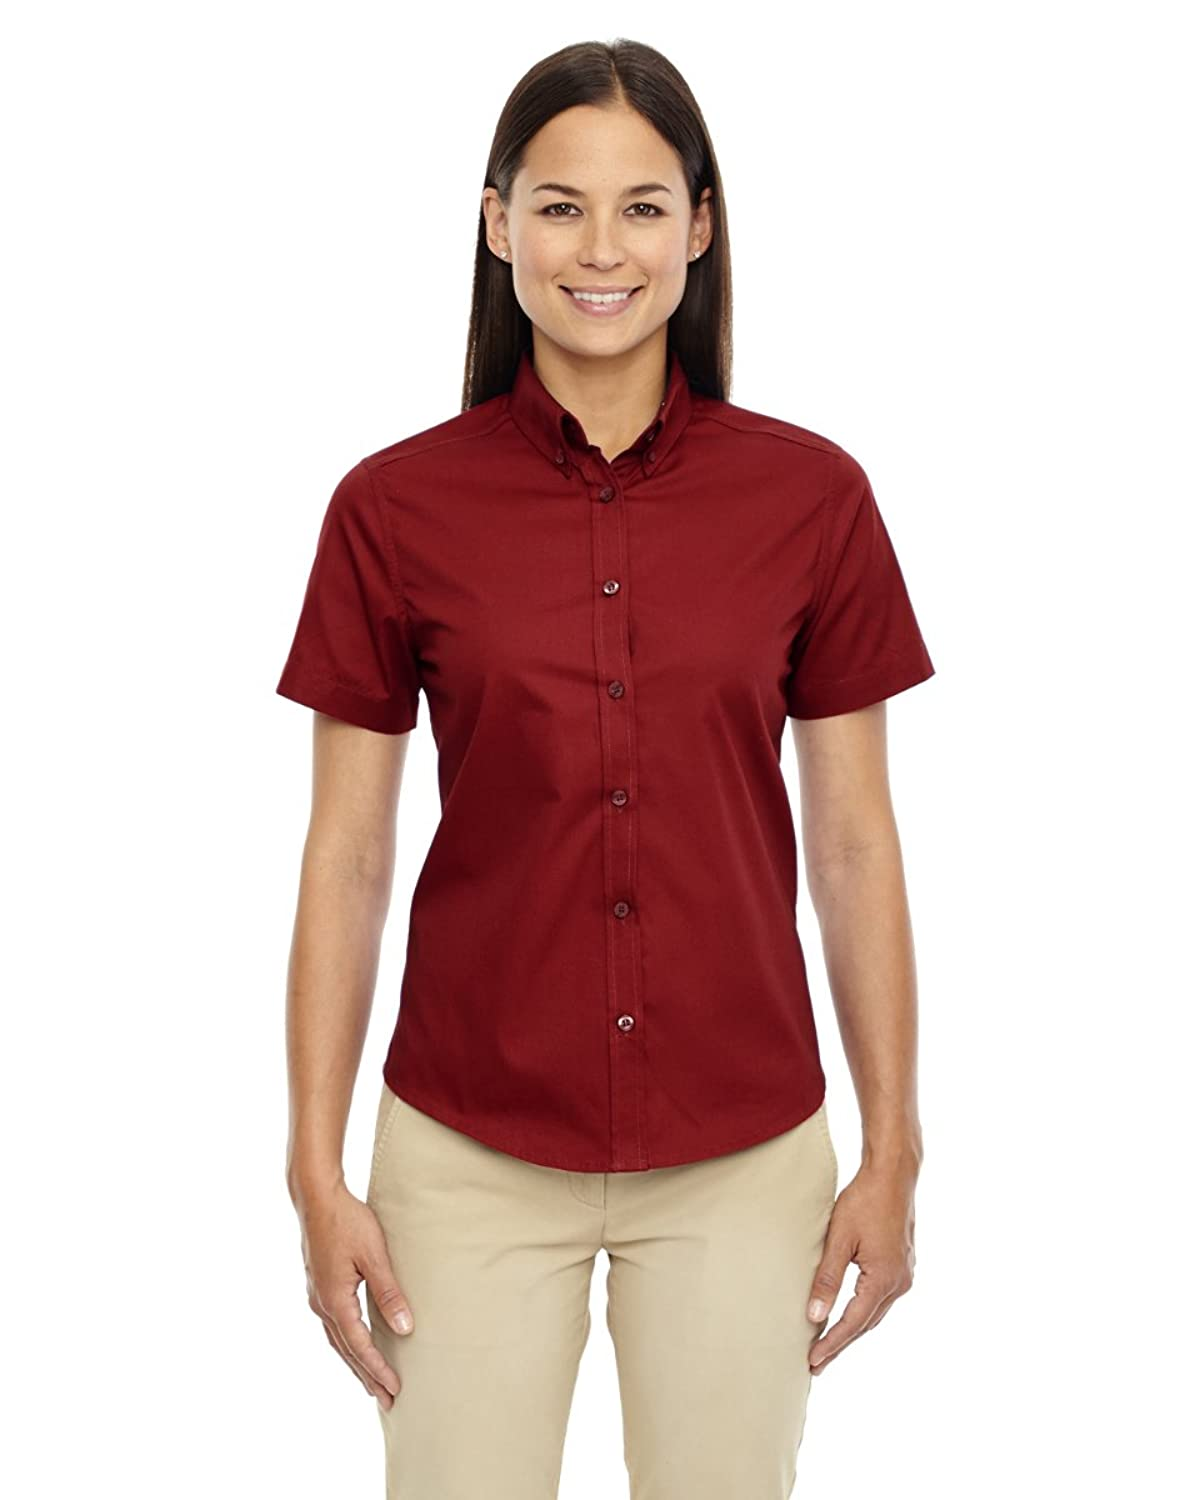 Ash City Core 365 78194 - OPTIMUM CORE 365TM LADIES' SHORT SLEEVE TWILL SHIRTS